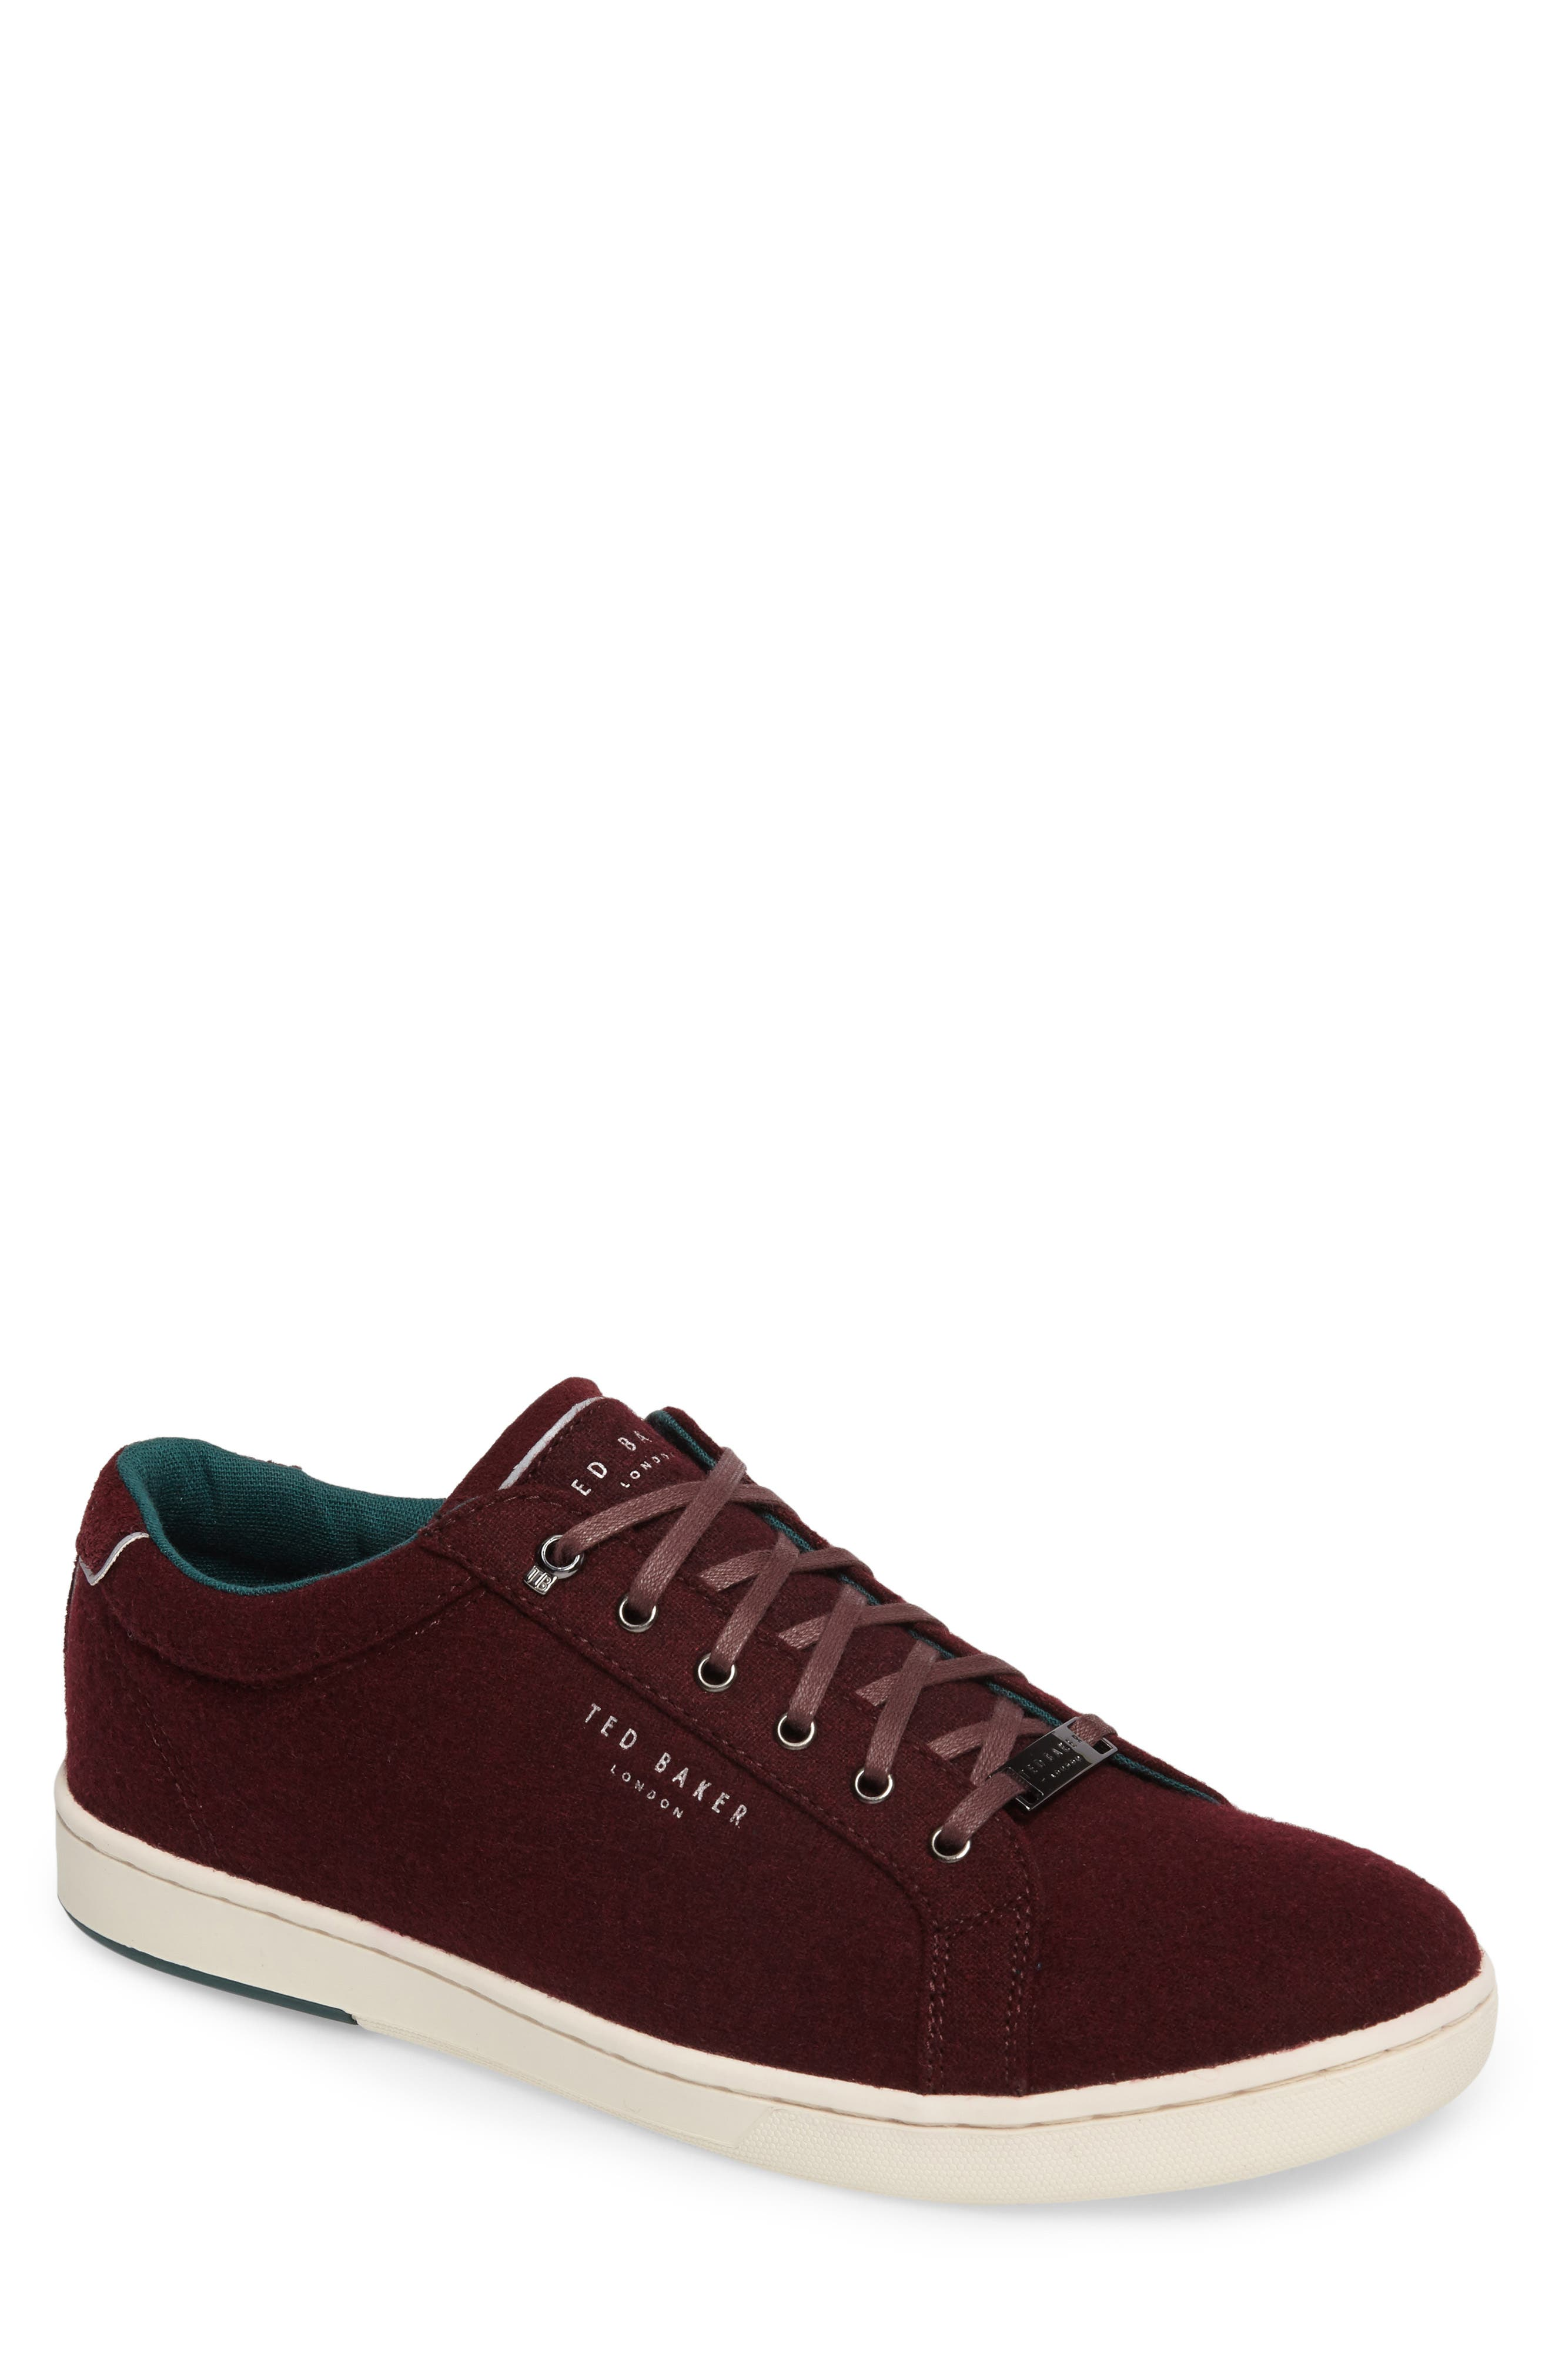 Alternate Image 1 Selected - Ted Baker London Minem 3 Sneaker (Men)